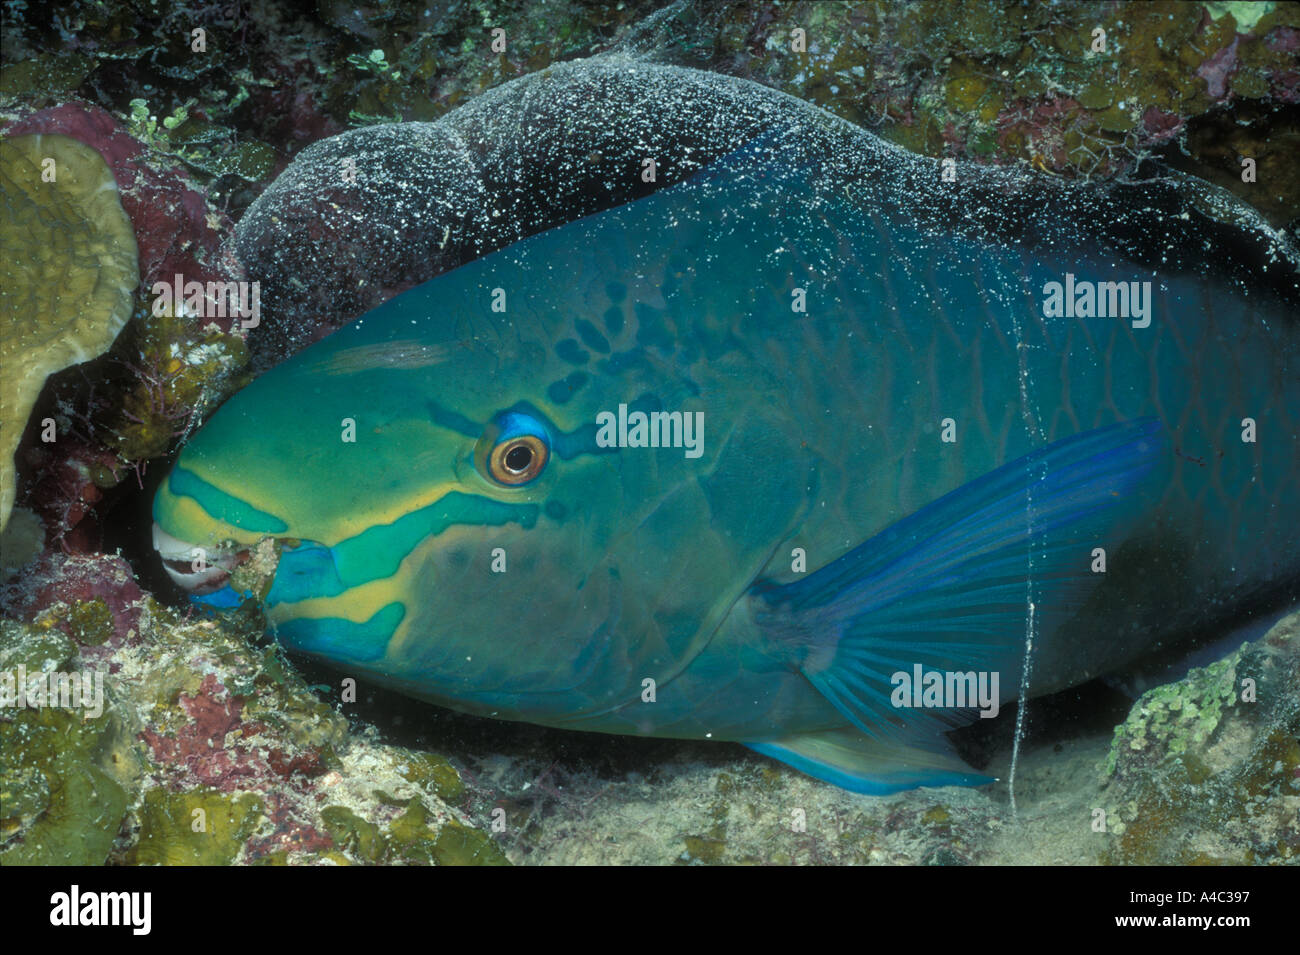 QUEEN PARROTFISH SCARUS VETULA IN MUCOUS COCOON - Stock Image